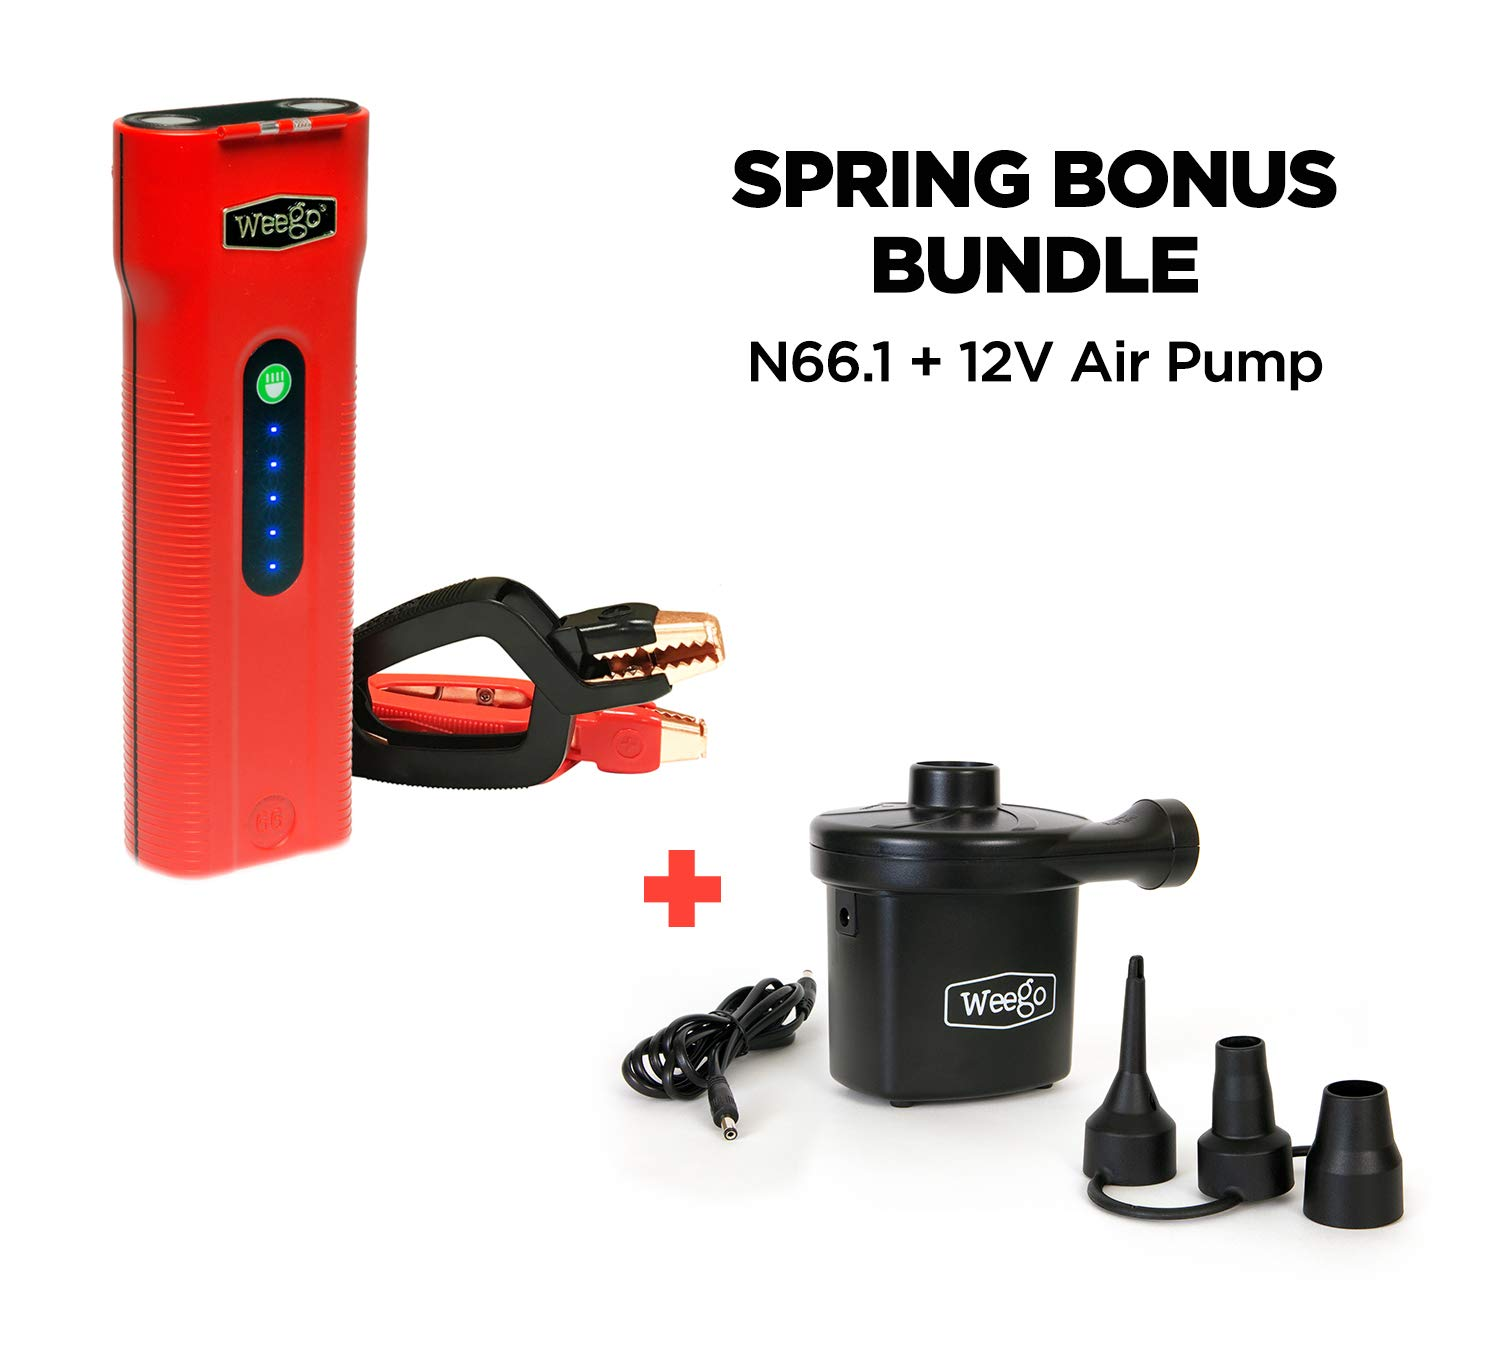 WEEGO 66.1 Jump Starting Power Pack with SPRING BONUS Weego 12V Air Pump for Inflatables, 600 Cranking Amps, New Model, Lithium Ion, 600 Lumen LED Flashlight, Quick-Charges Phones, Water Resistant